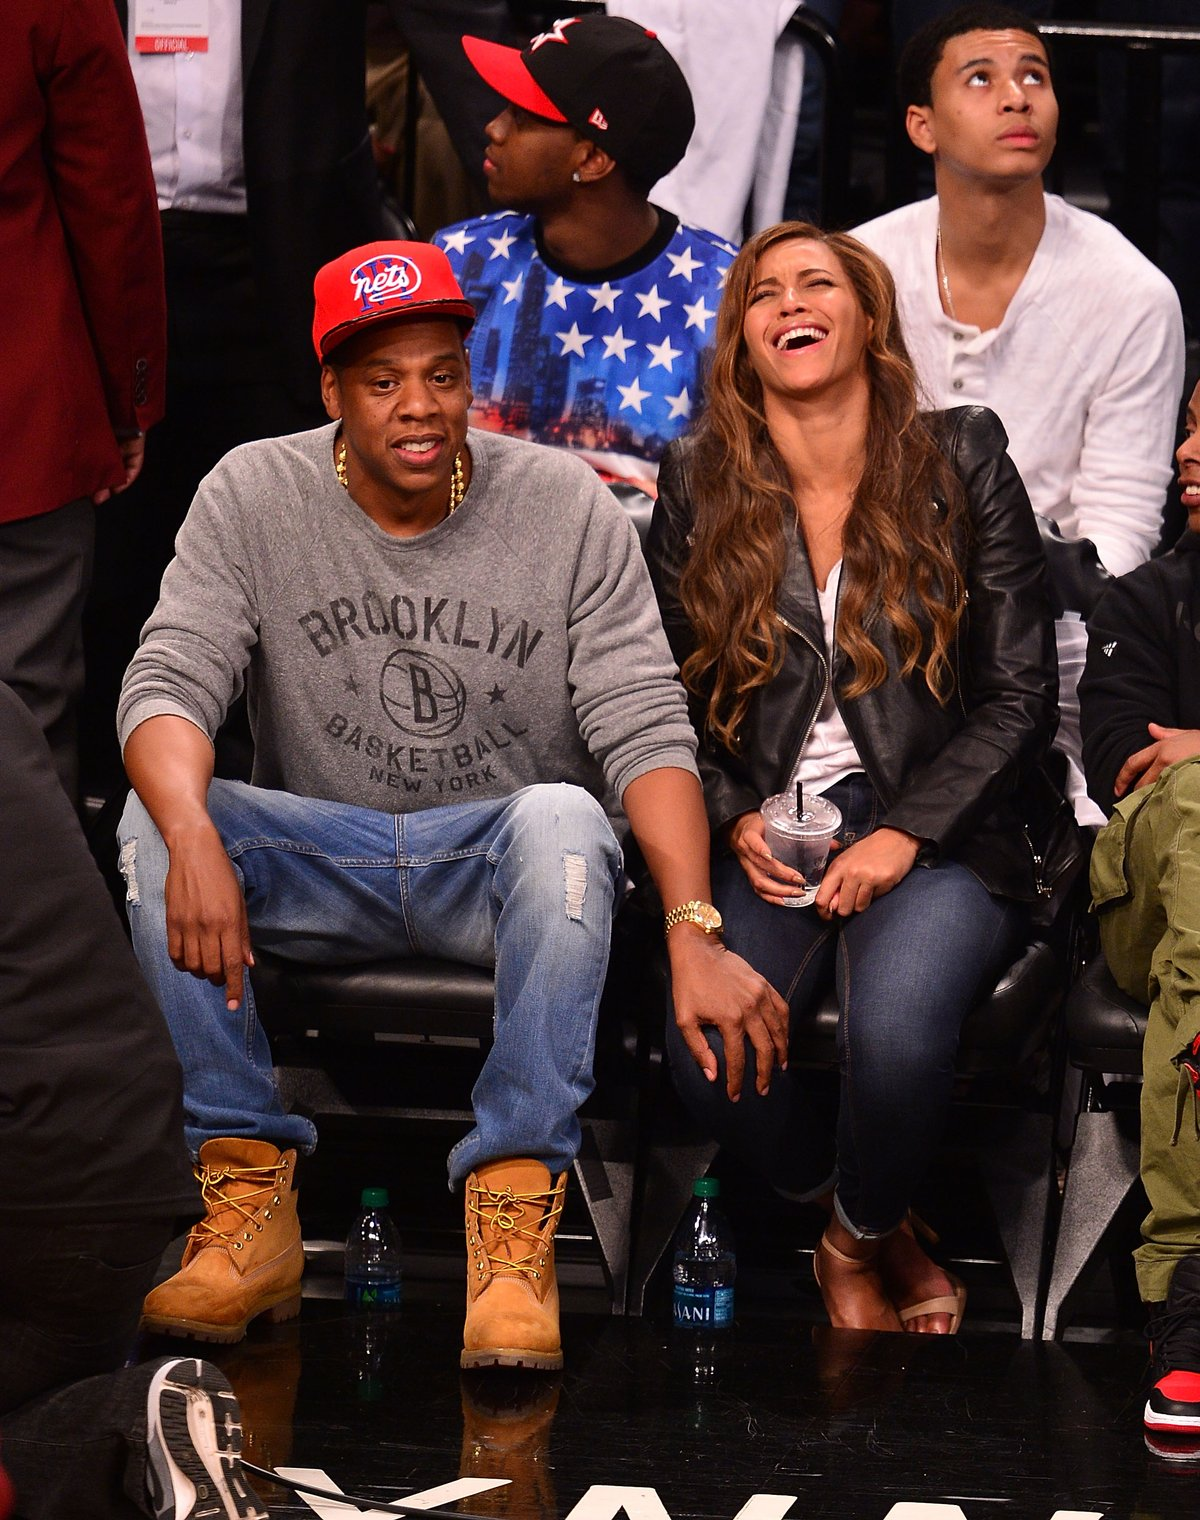 Jay Z remains focused while Beyonce laughs it up